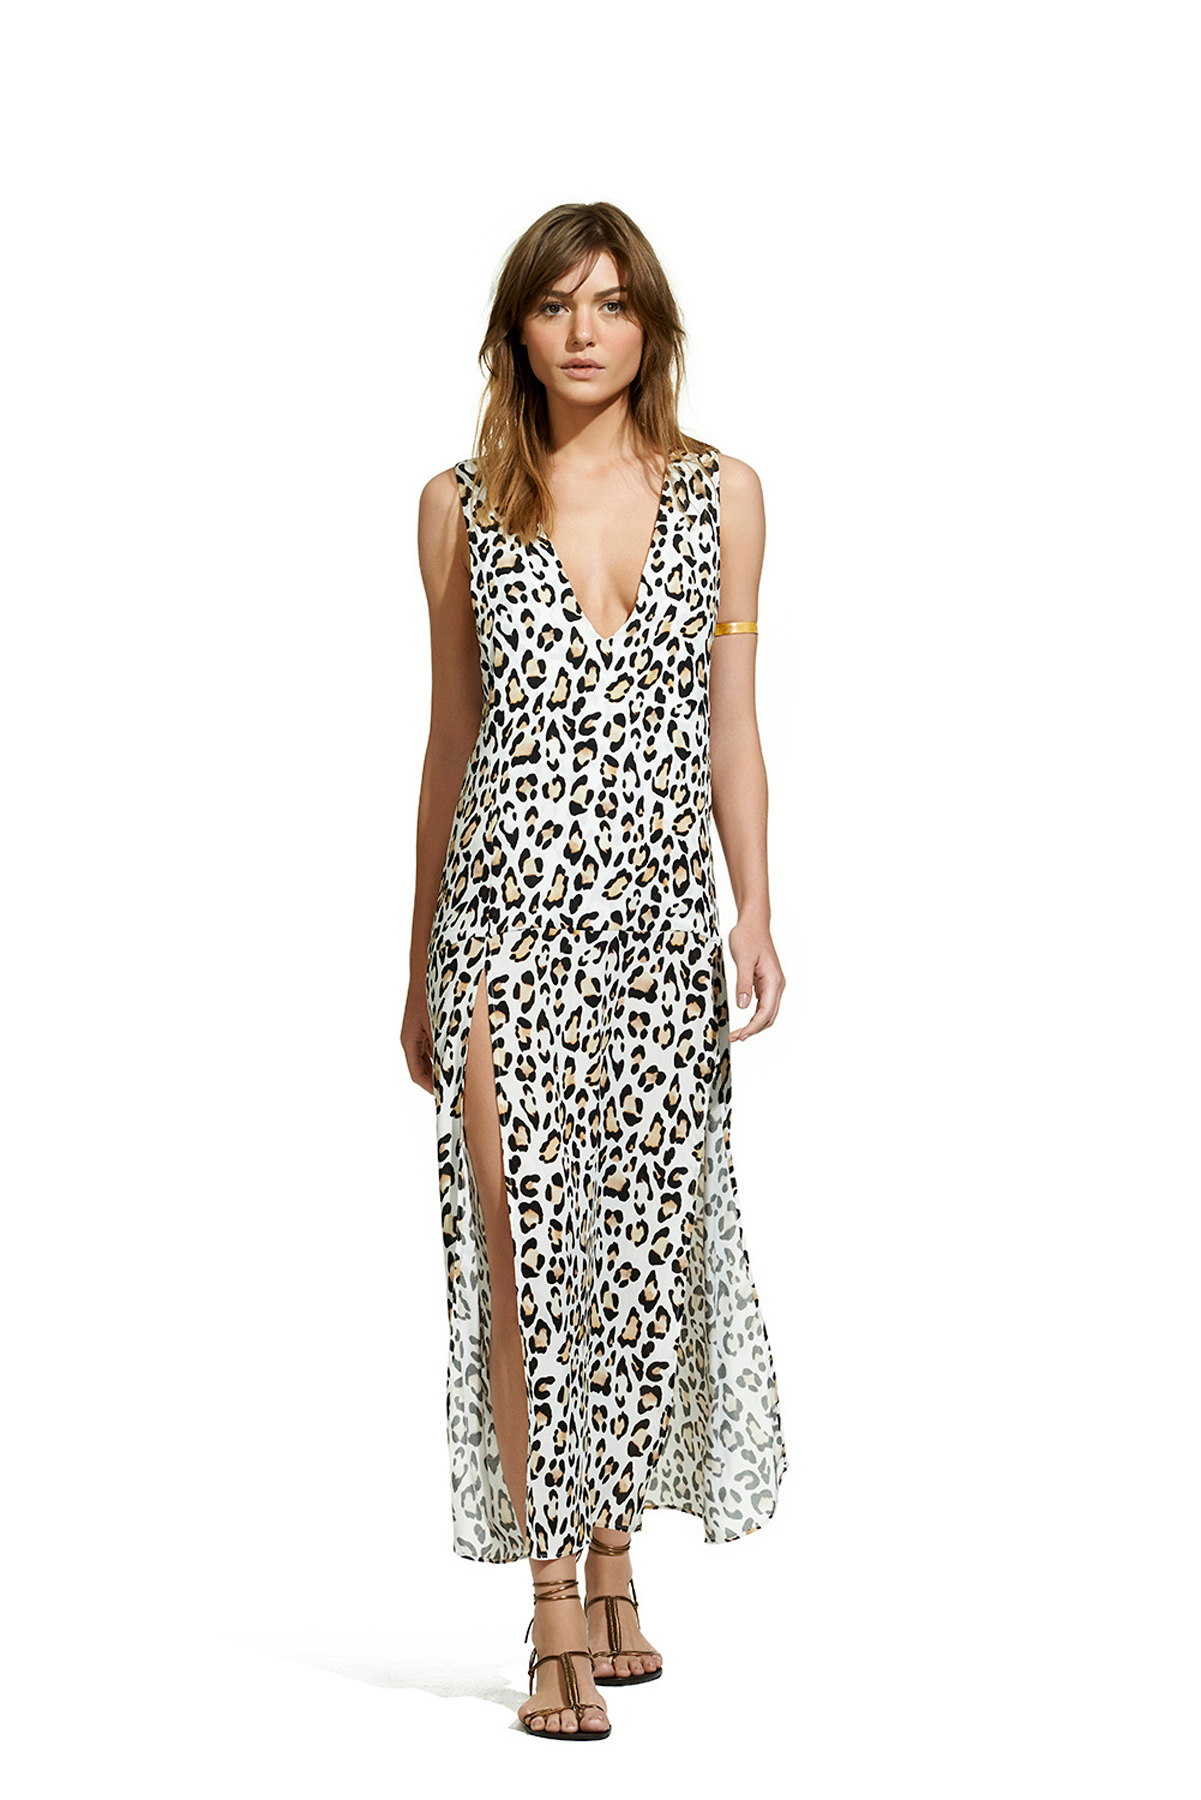 21-leopard-siena-long-caftan-vs172028-1219-f-copiar